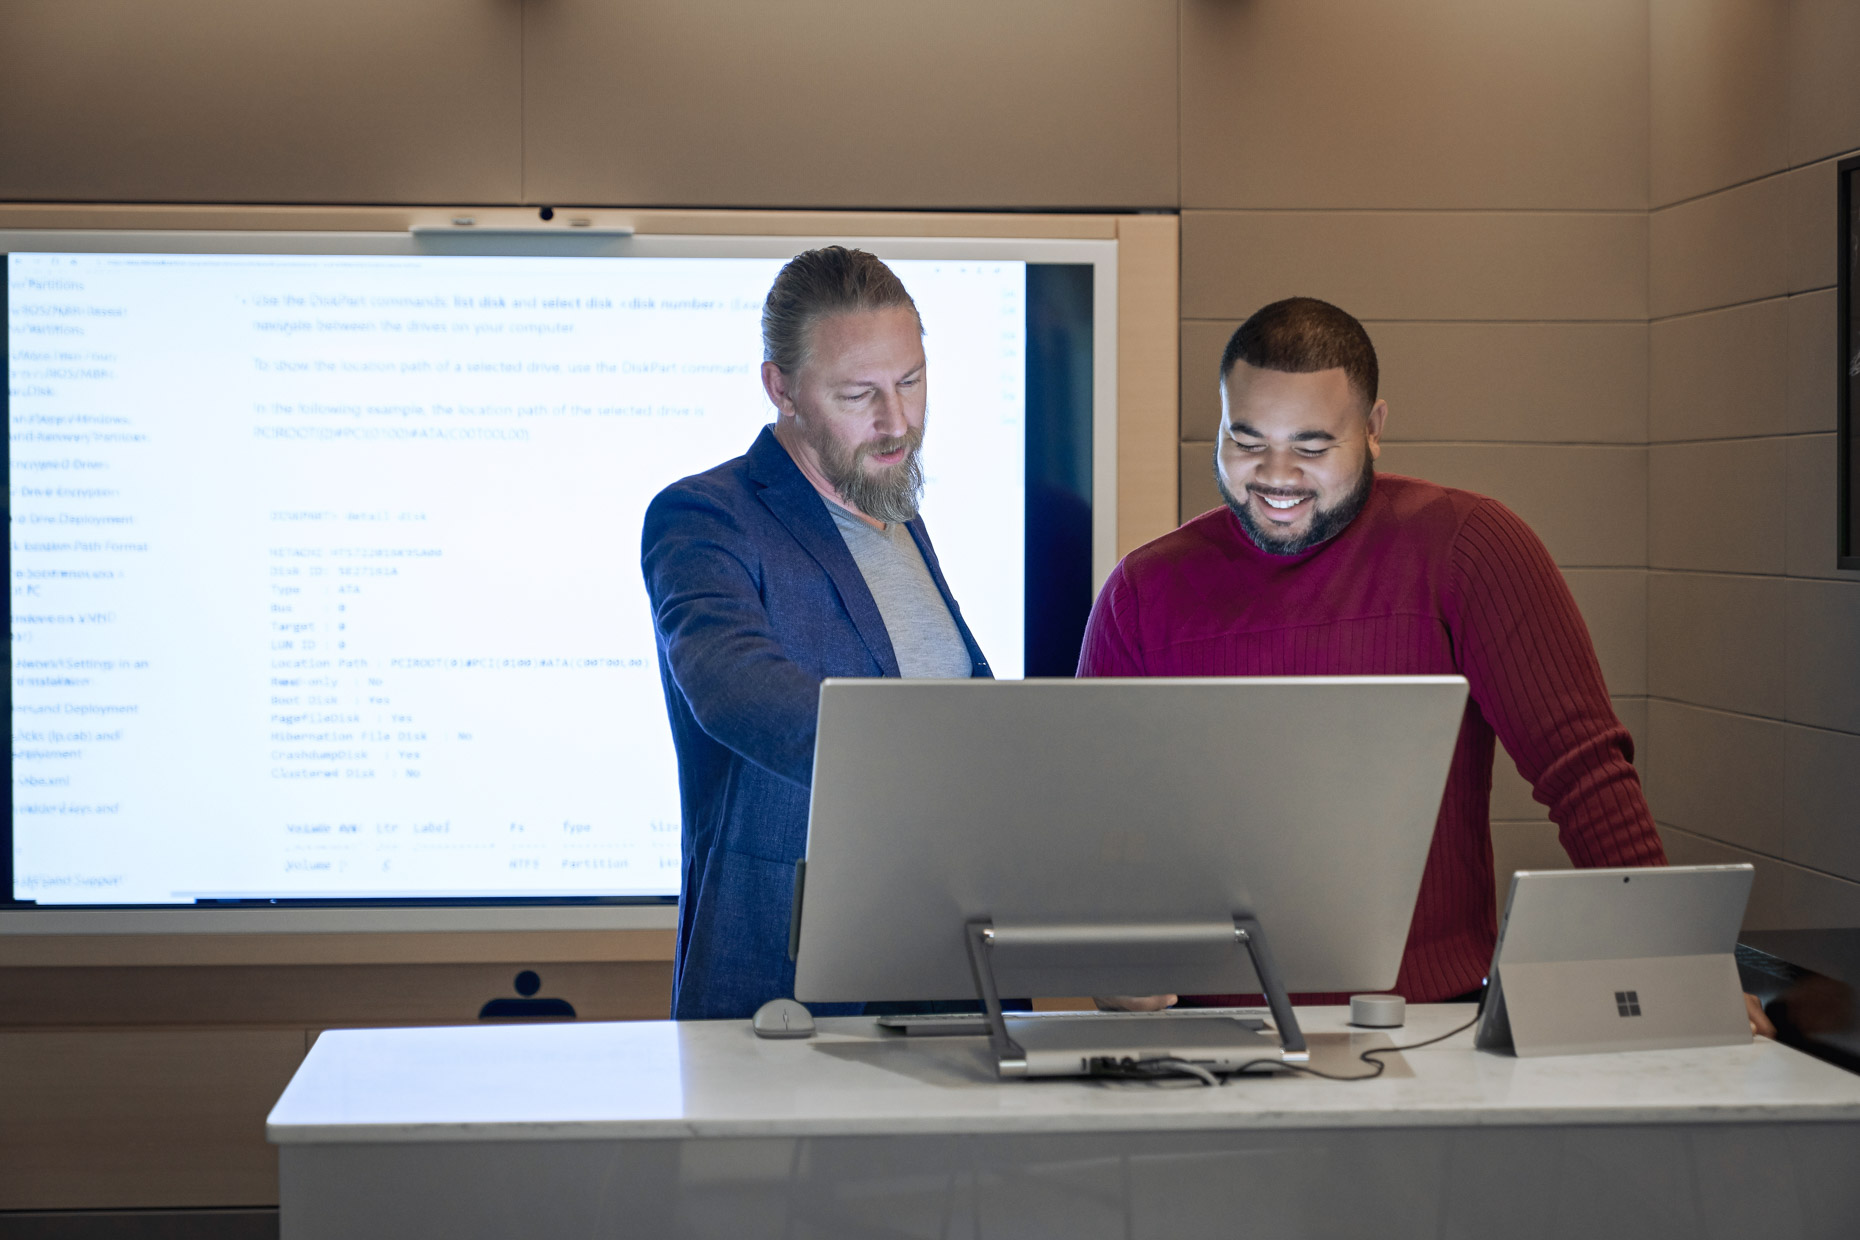 Men working together at computer with screen behind them